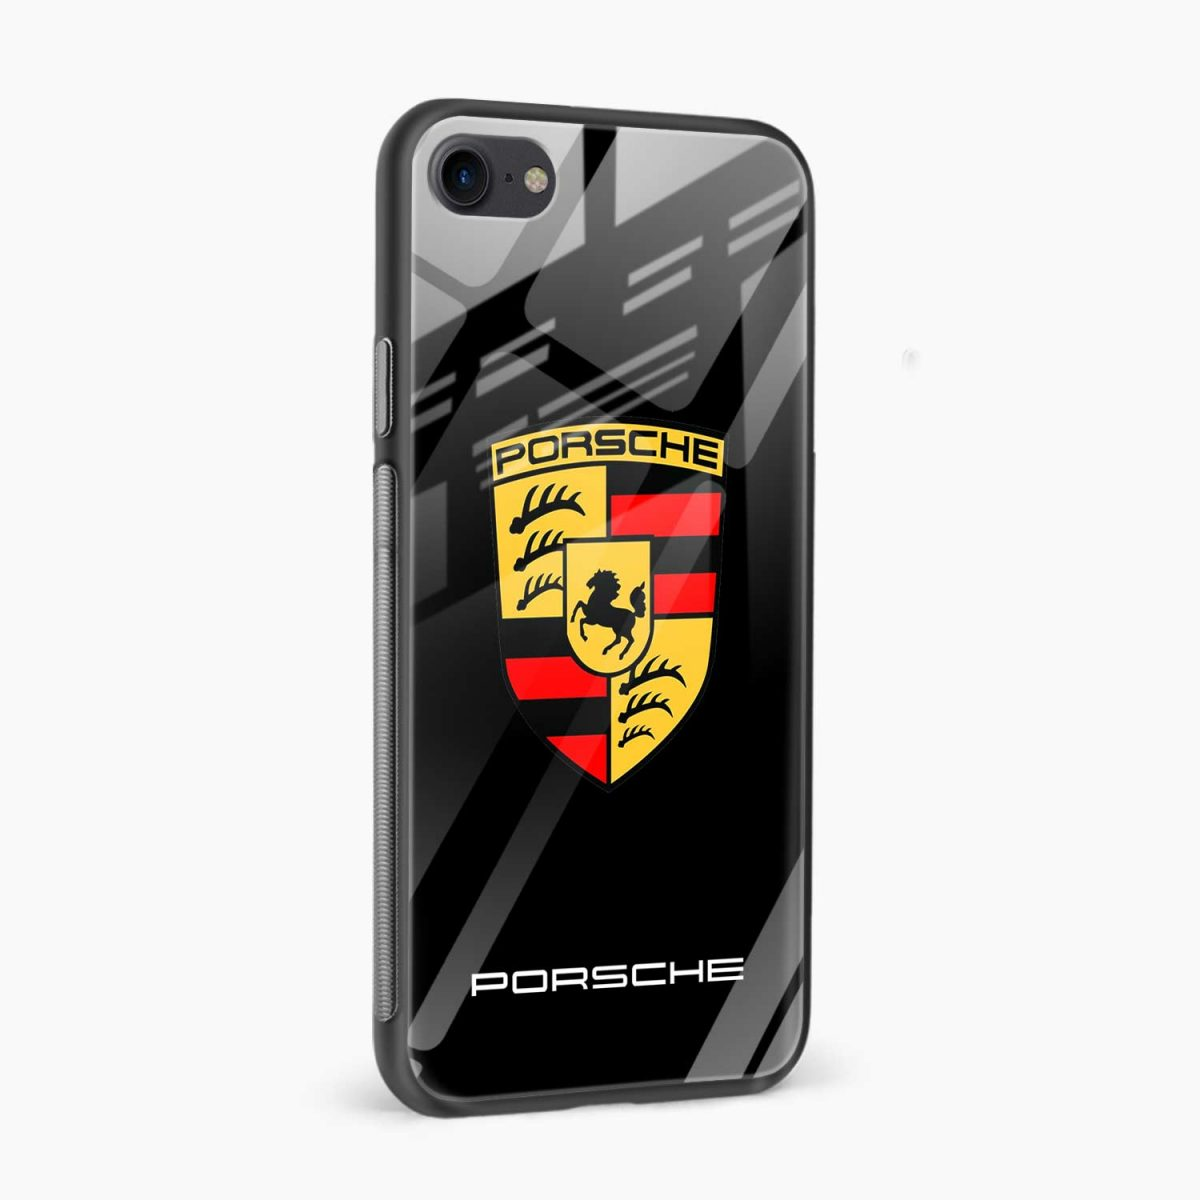 prosche side view apple iphone 6 7 8 se back cover